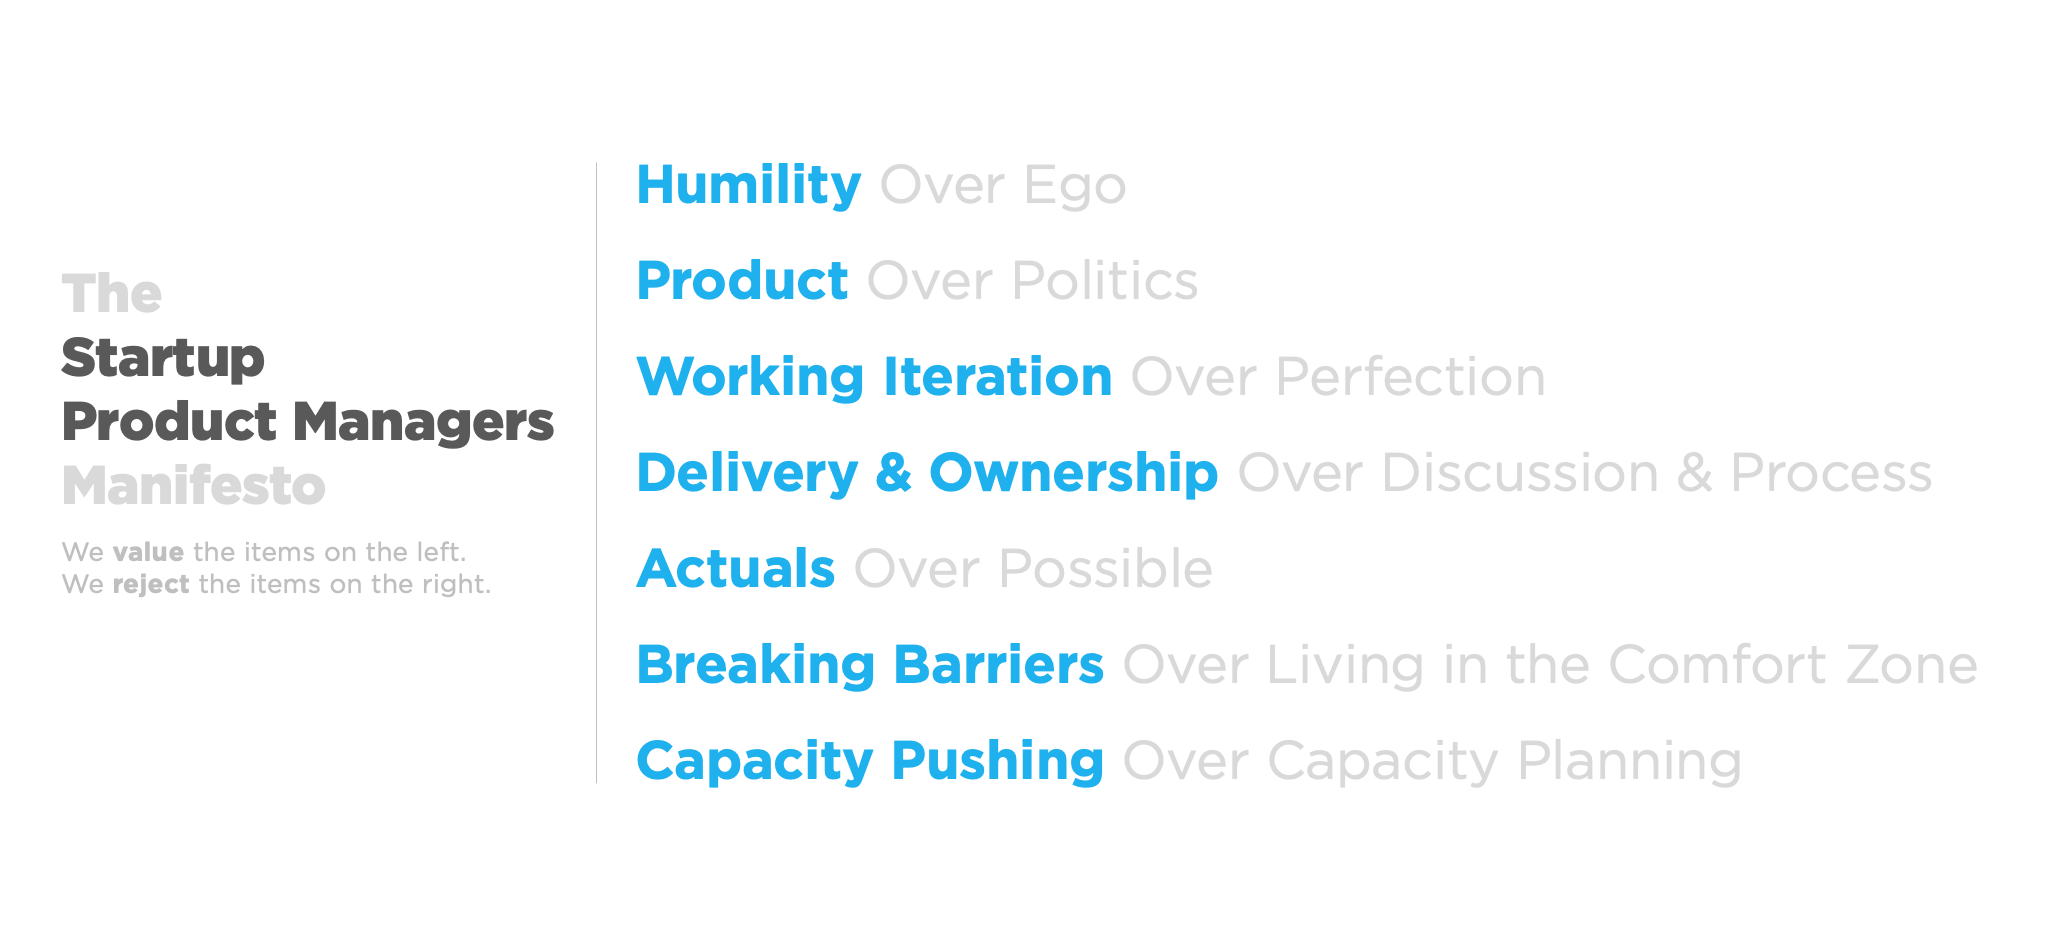 The Startup Product Managers Manifesto.